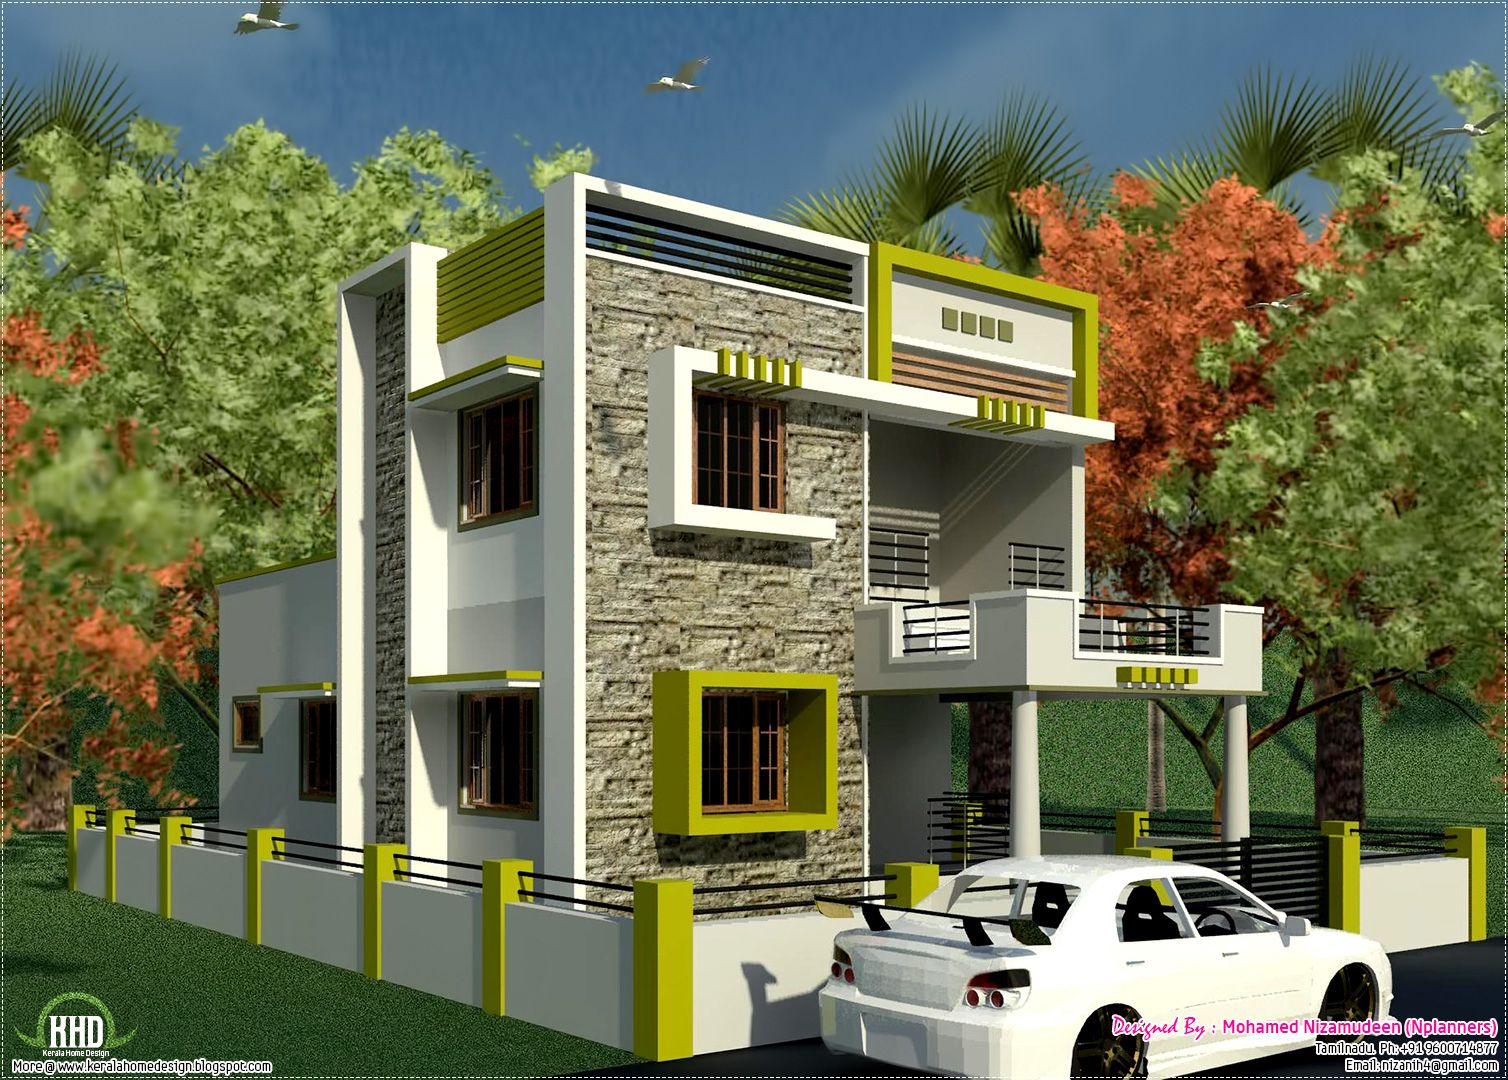 Small house with car park design tobfav com ideas for House designs indian style pictures